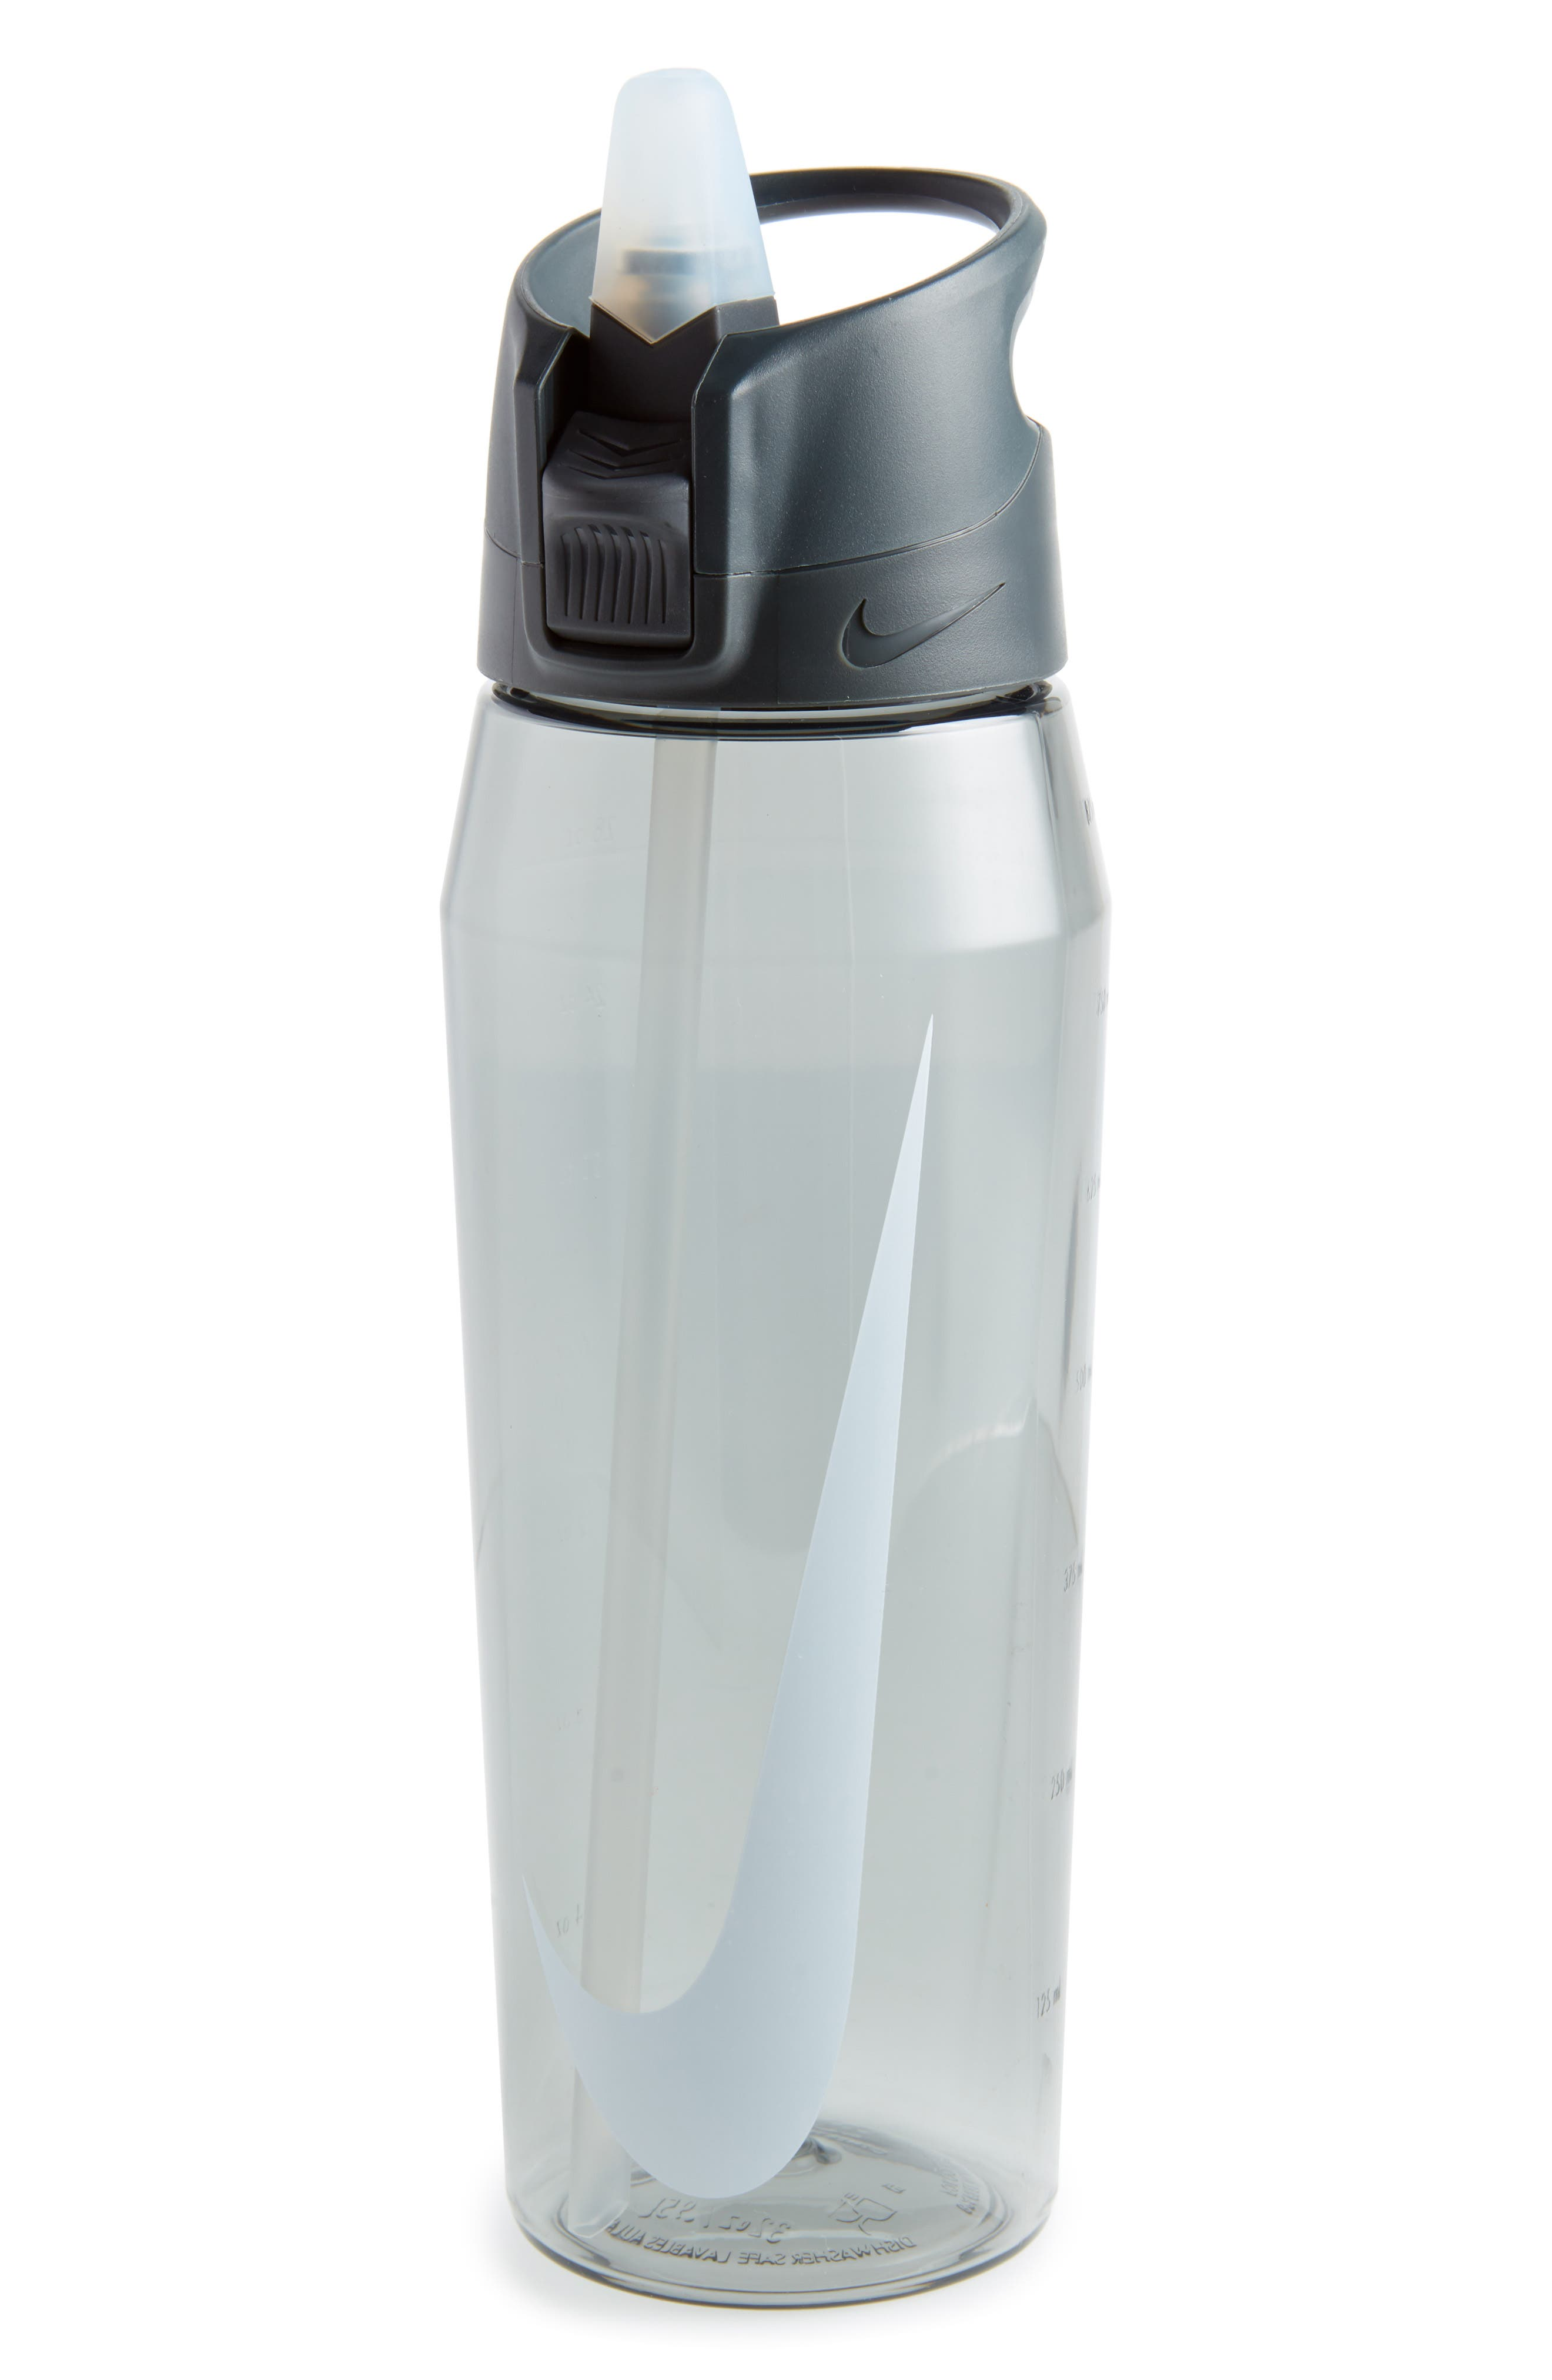 Hypercharge 32 oz. Water Bottle,                             Main thumbnail 1, color,                             Anthracite/ Cool Grey/ White